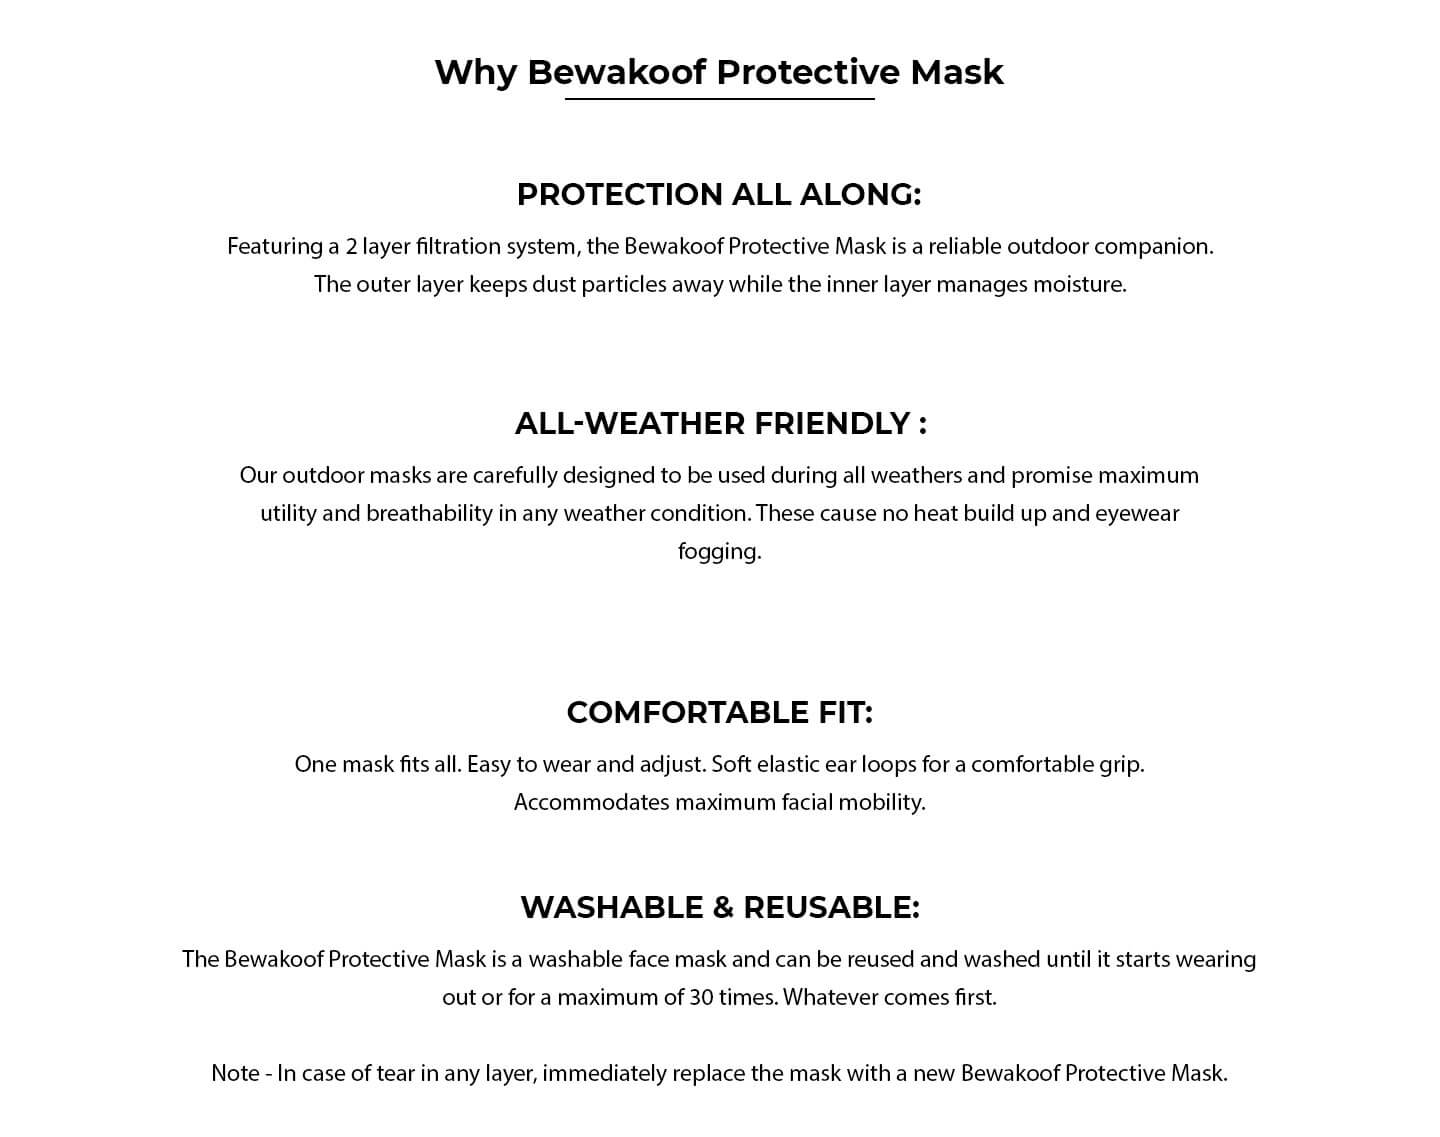 Women's 2-Layer Everyday Protective mask - Pack of 3 (Jet Black) Description Image Website 1@Bewakoof.com